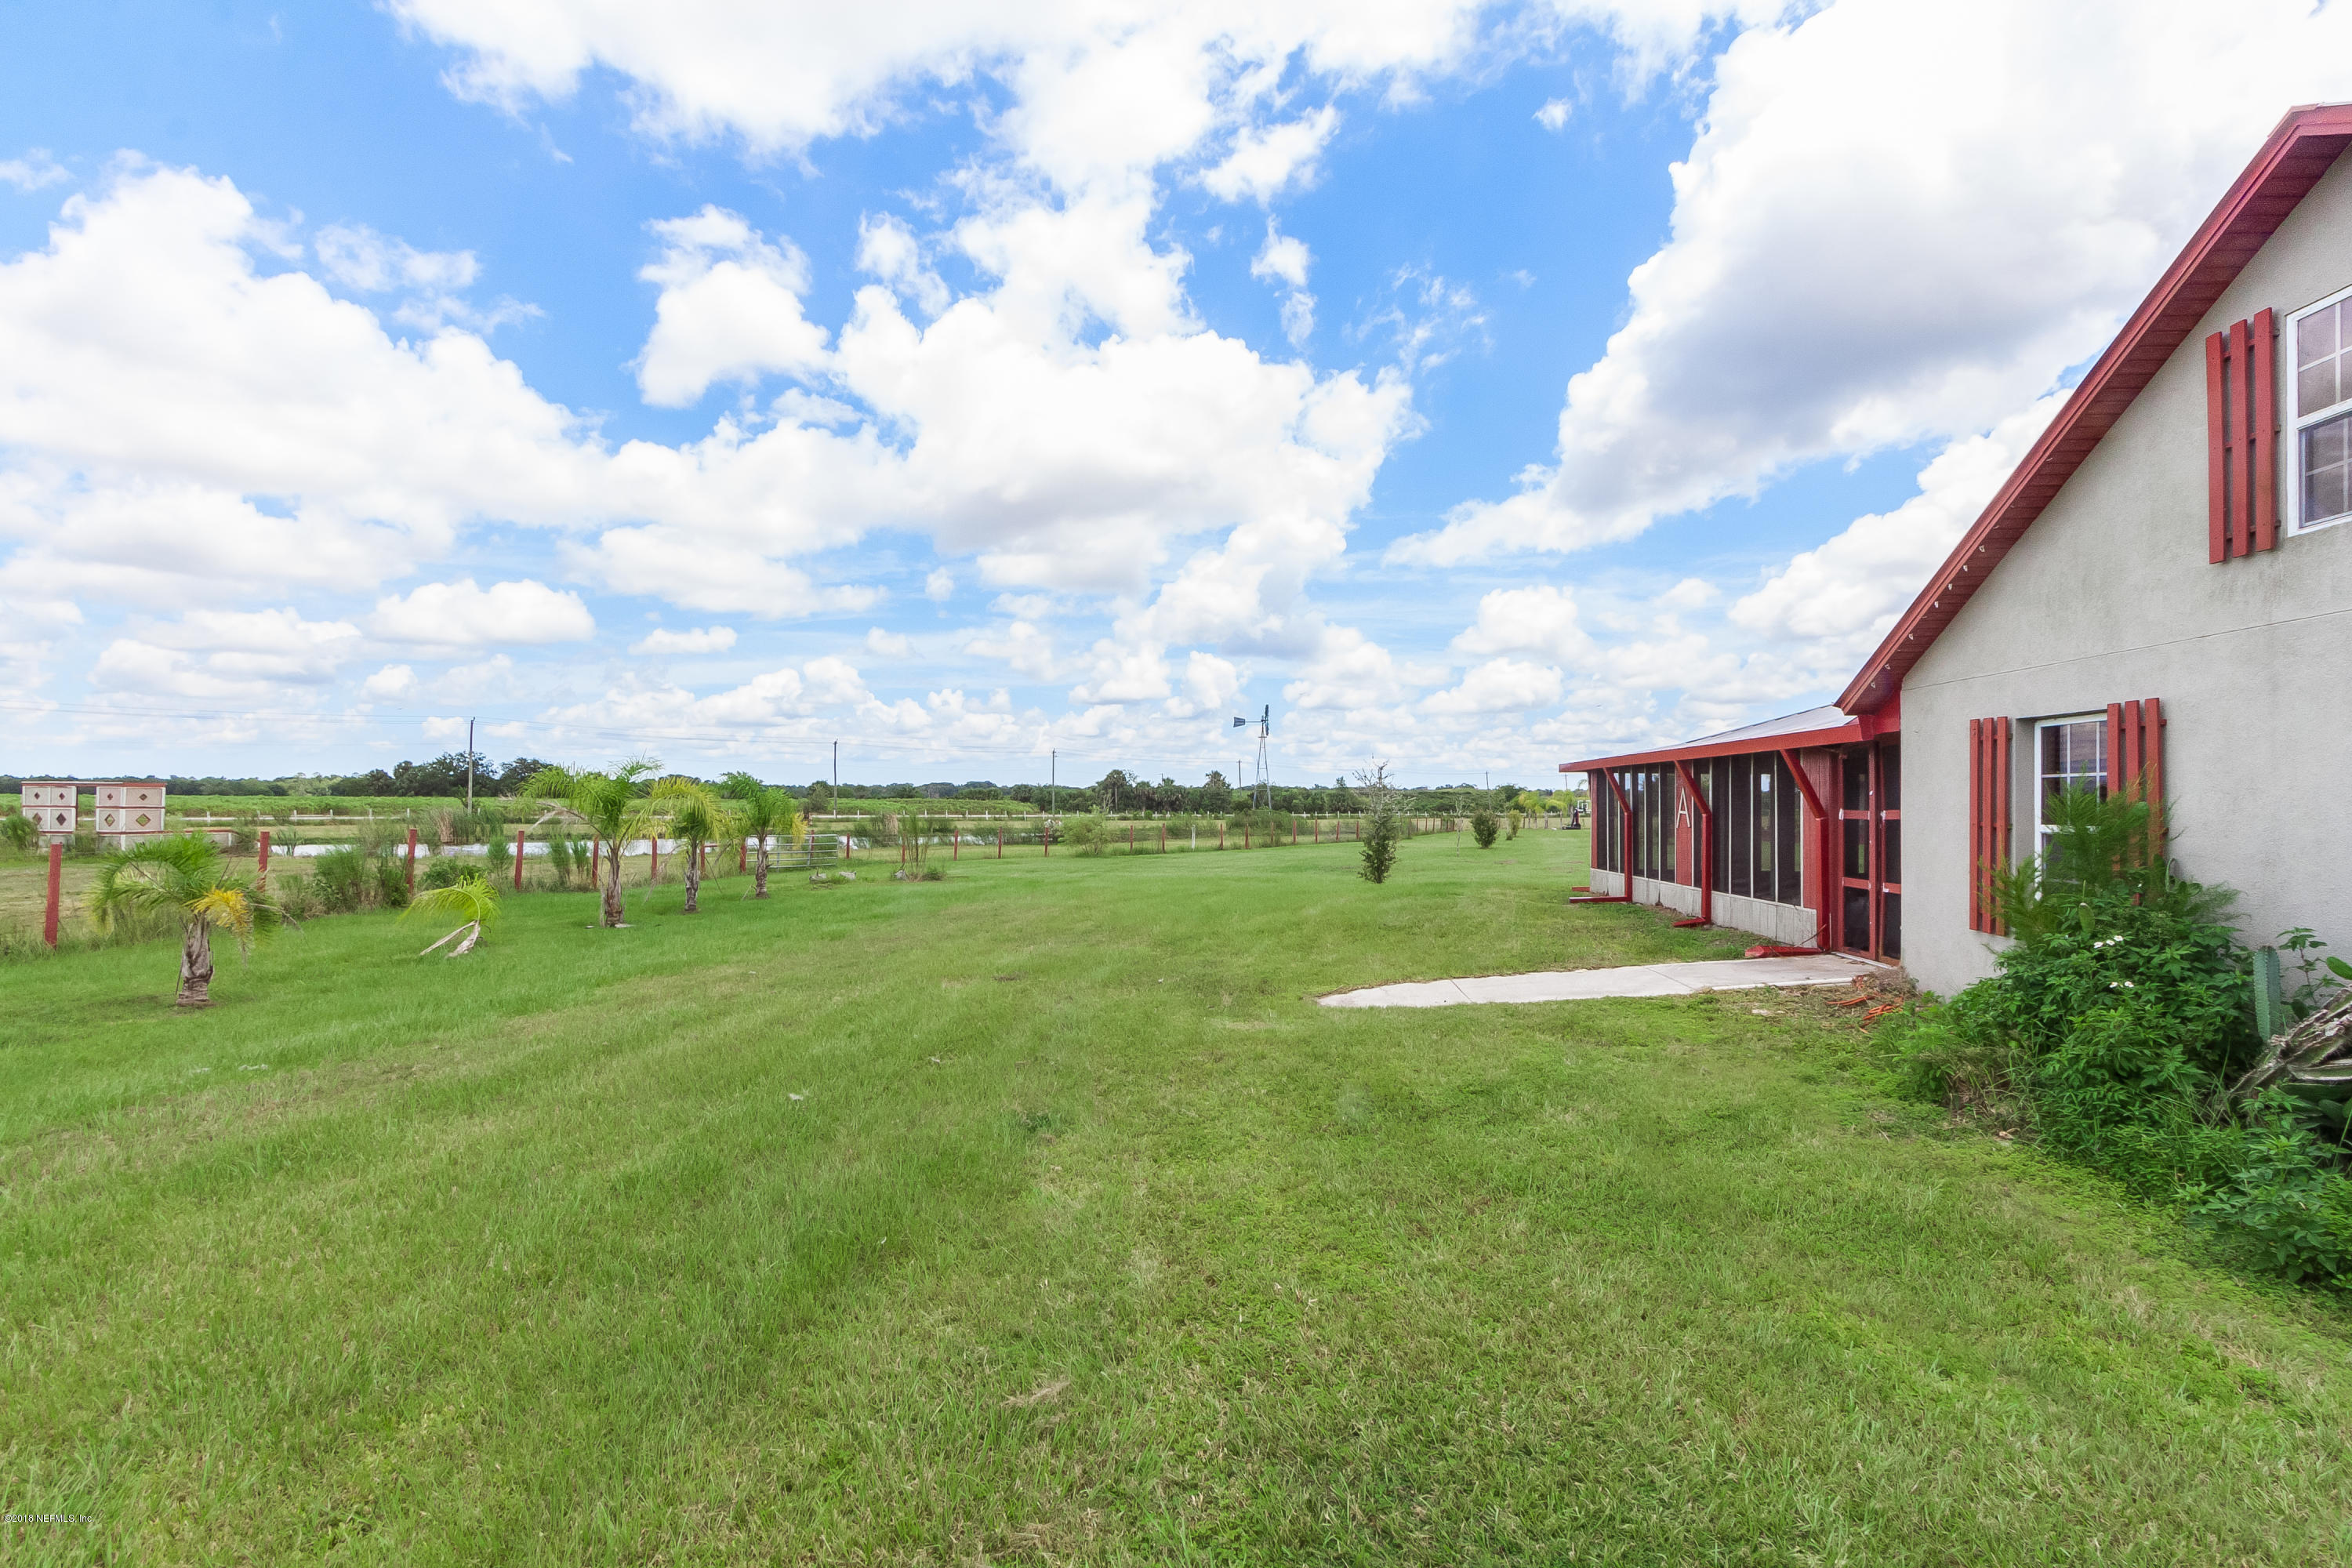 7351+ 7475 COUNTY ROAD 13, HASTINGS, FLORIDA 32145, 3 Bedrooms Bedrooms, ,2 BathroomsBathrooms,Farms,For sale,COUNTY ROAD 13,949180